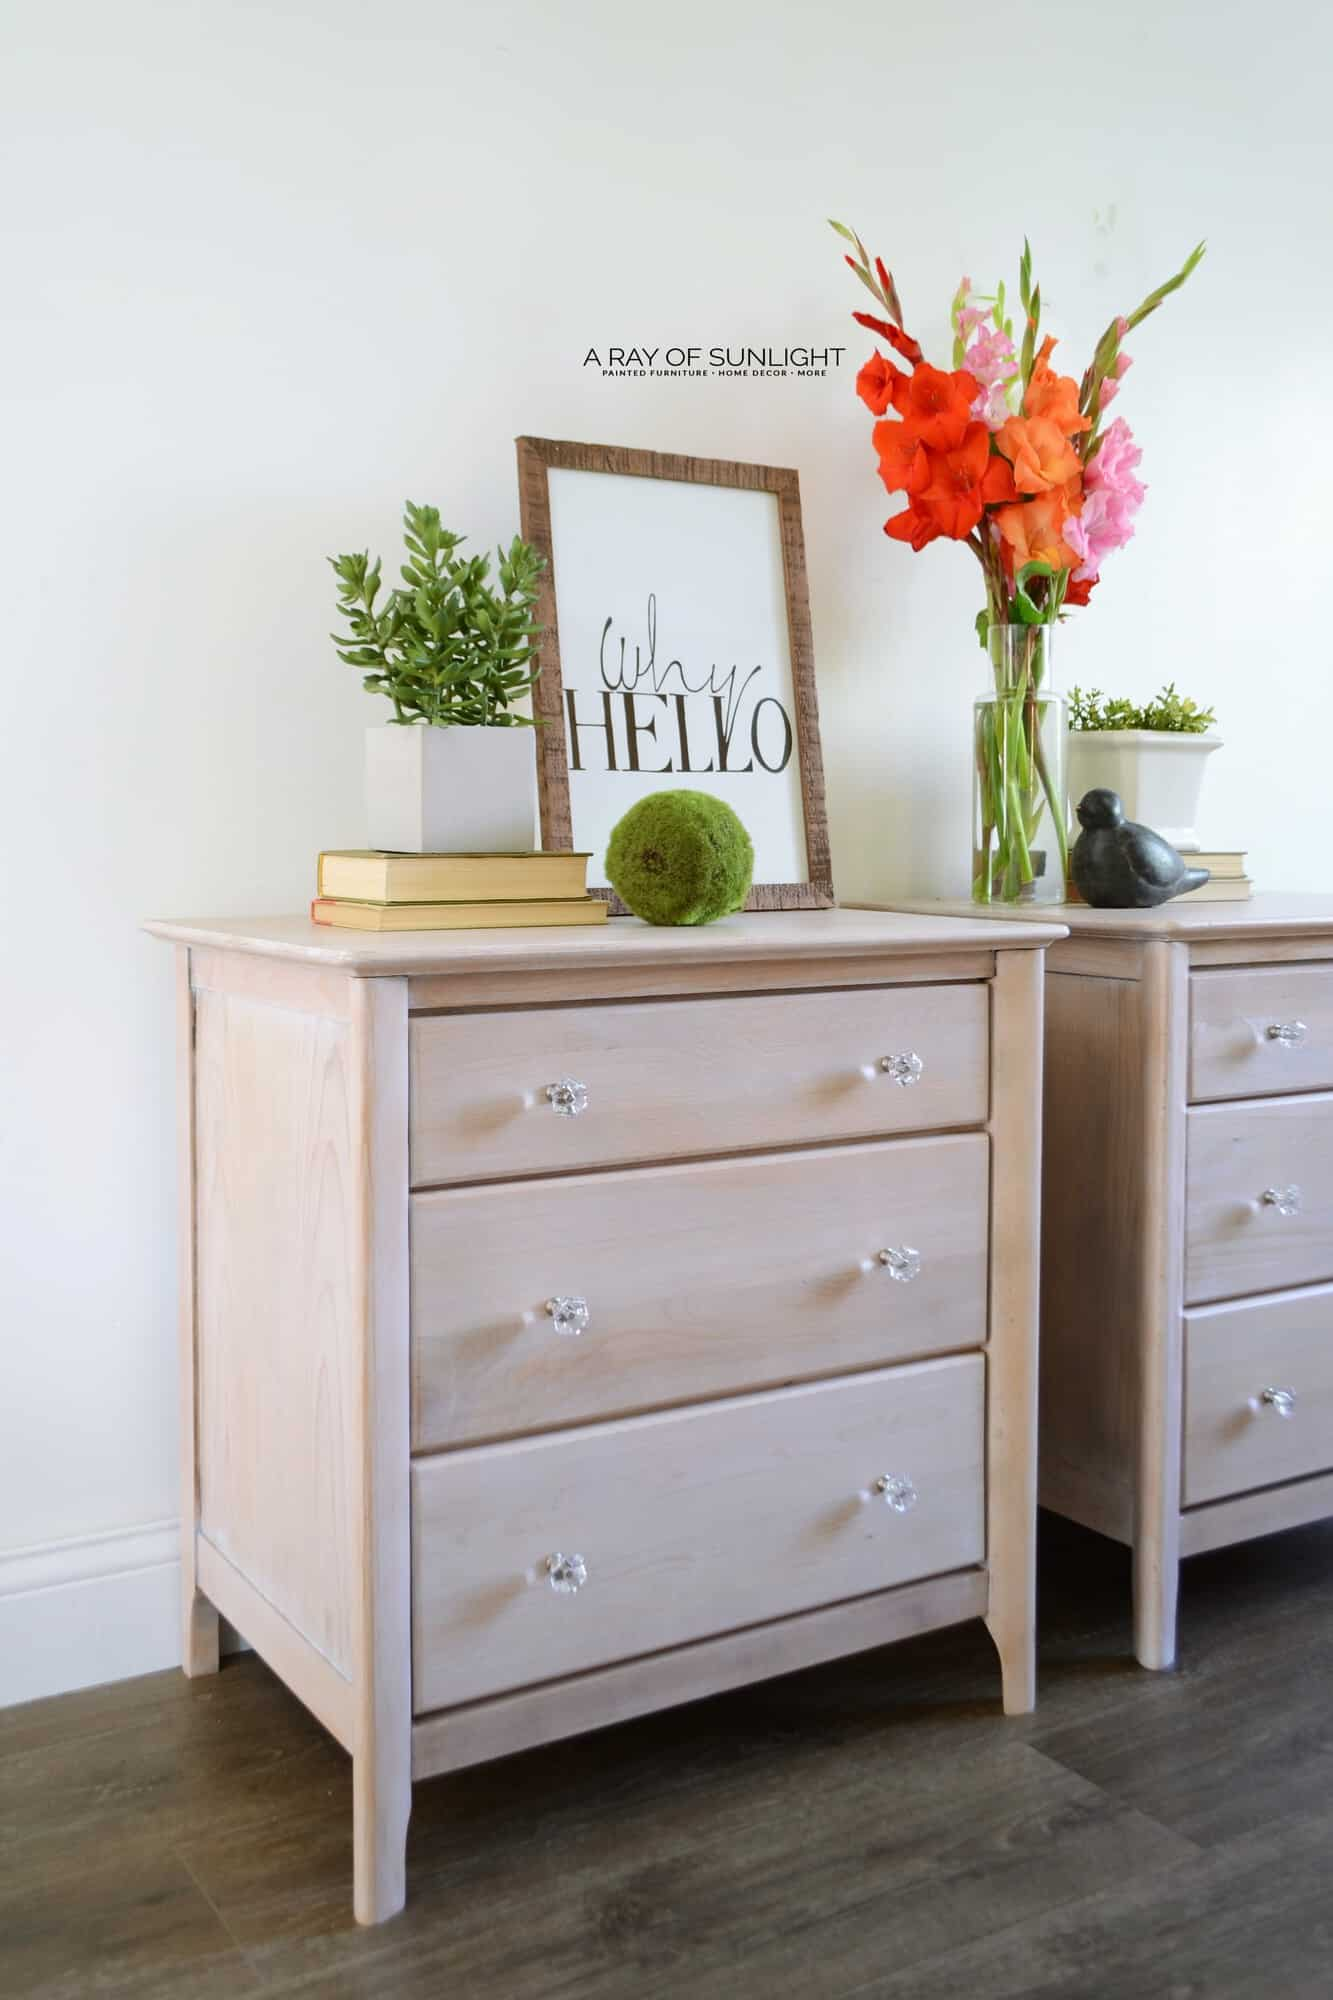 How You Can Get This Modern Raw Wood Look On Your Next Diy Furniture Project In